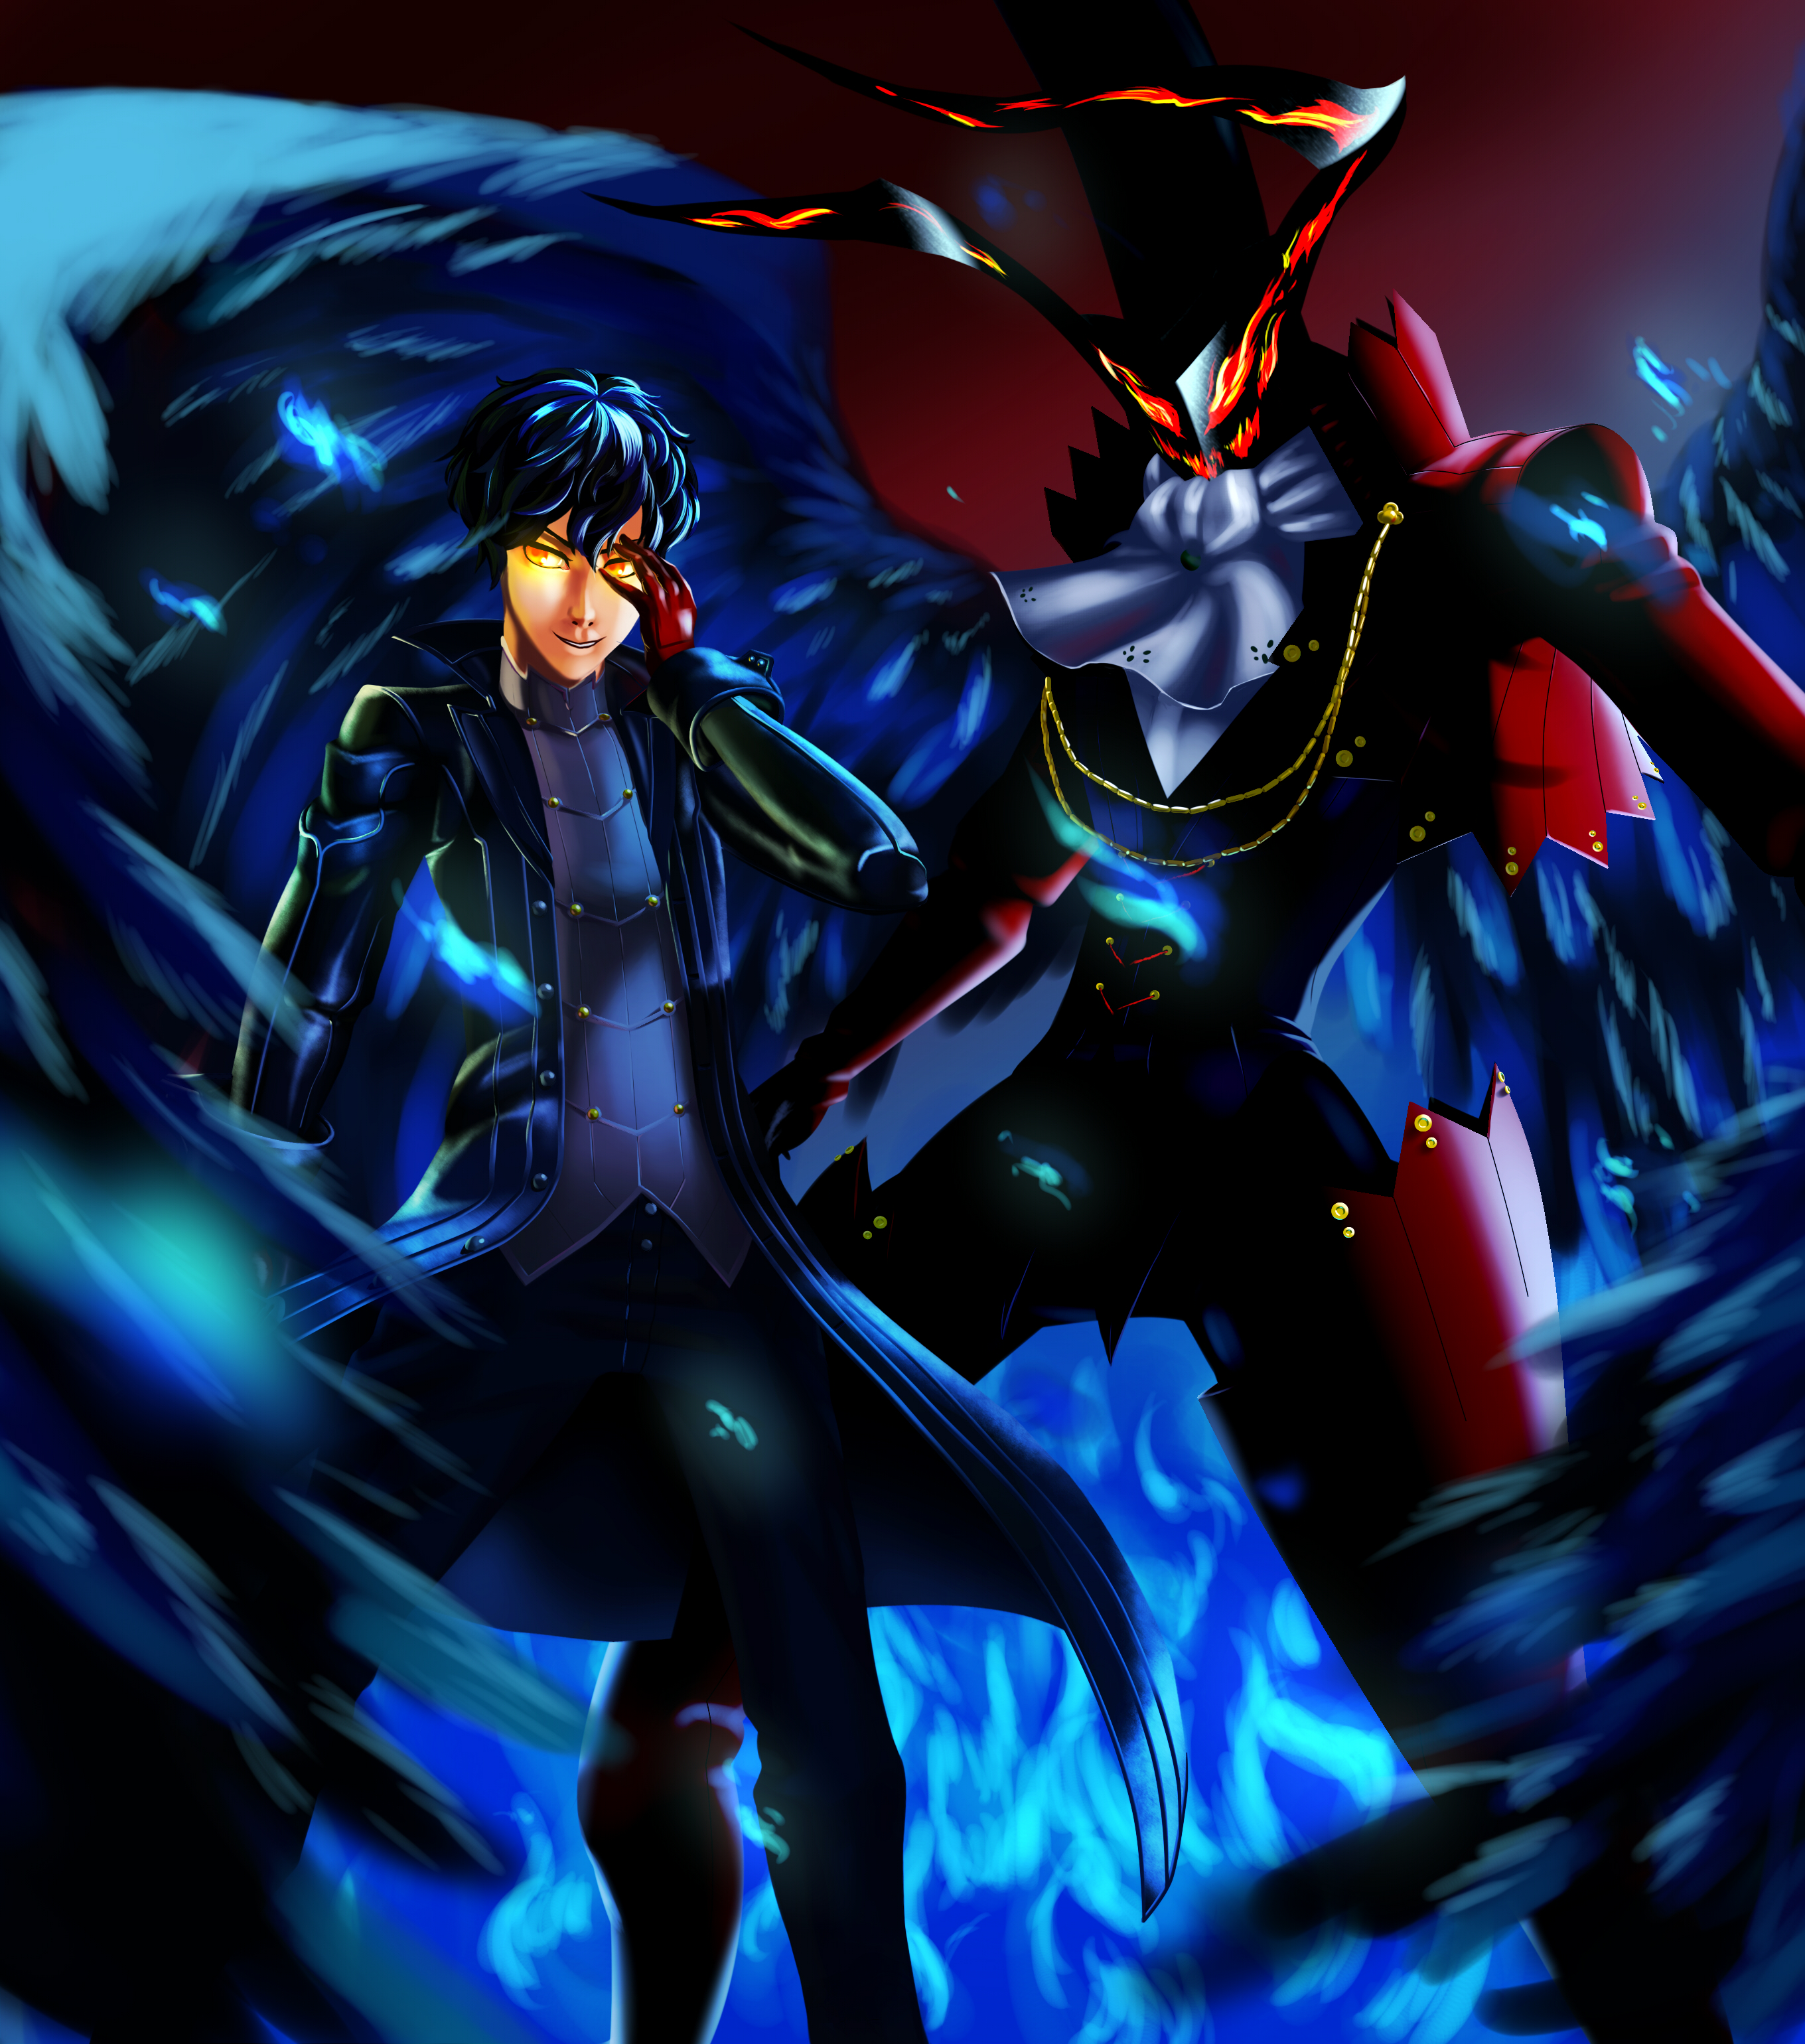 Persona 5 Protagonist Joker And Arsene By Bodki 2 On Deviantart Amamiya ren's initial persona in persona 5, based on maurice leblanc's gentleman thief character of the same name. persona 5 protagonist joker and arsene